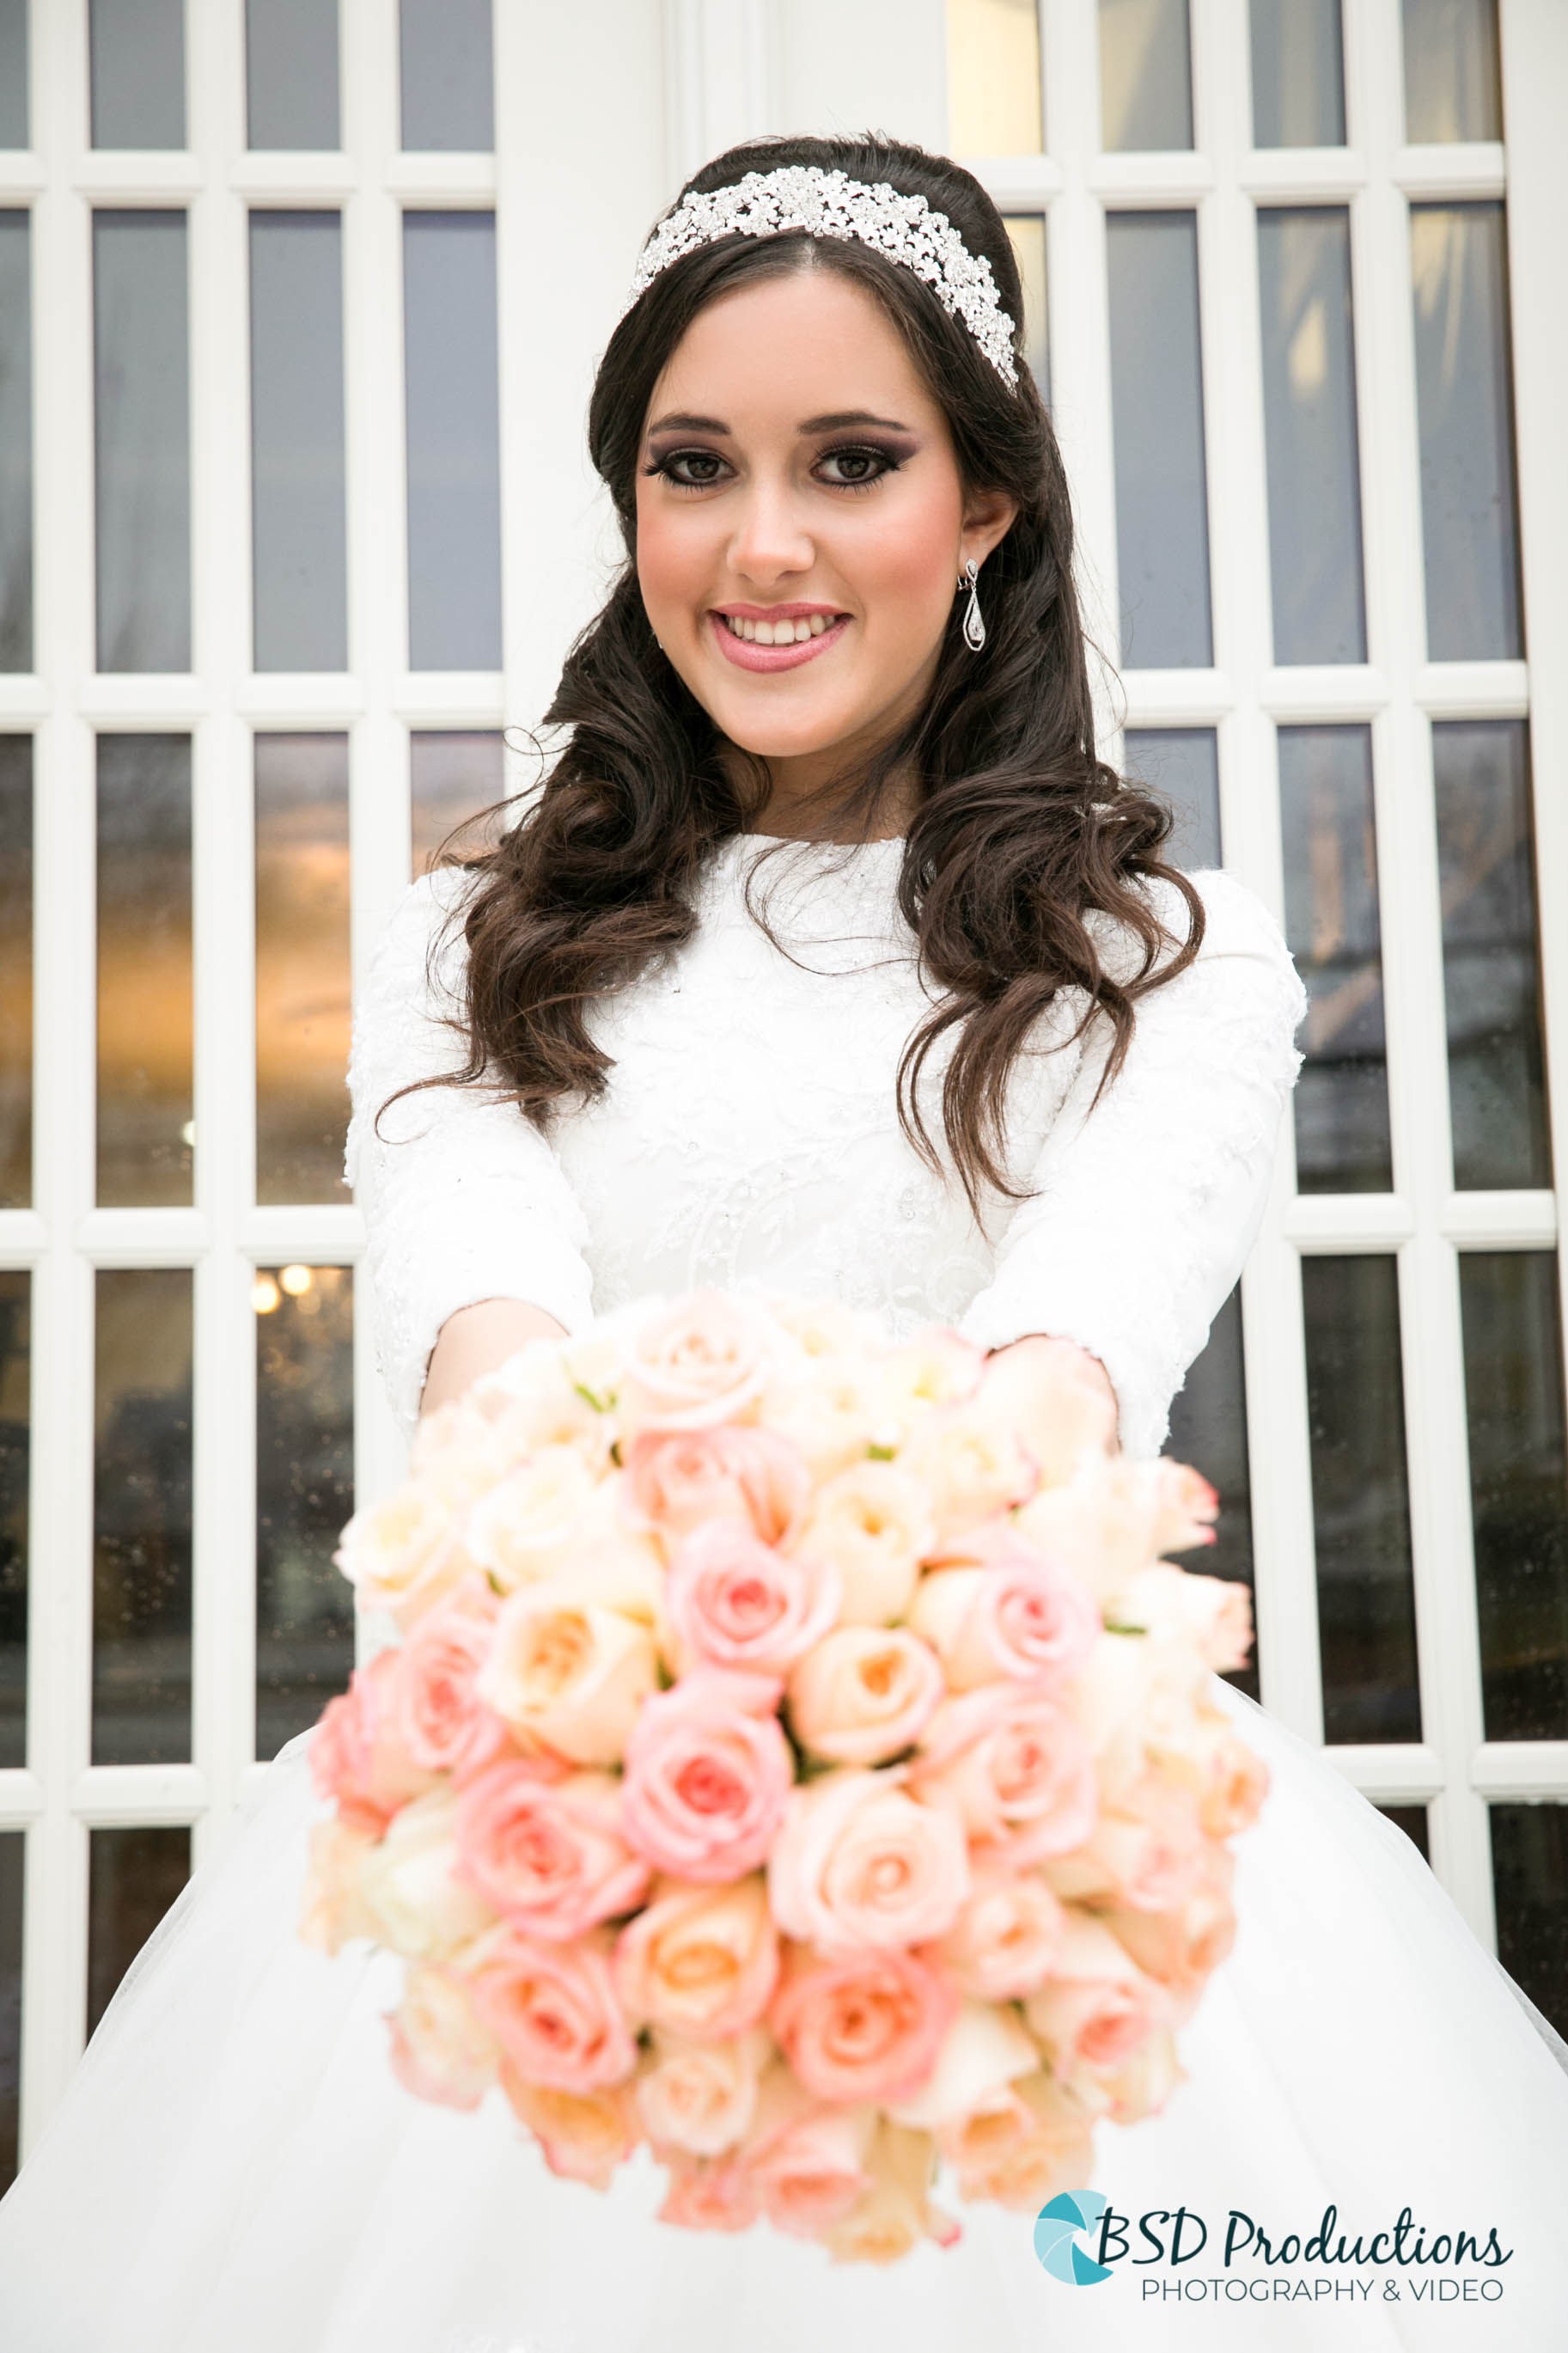 UH5A0237 Wedding – BSD Productions Photography